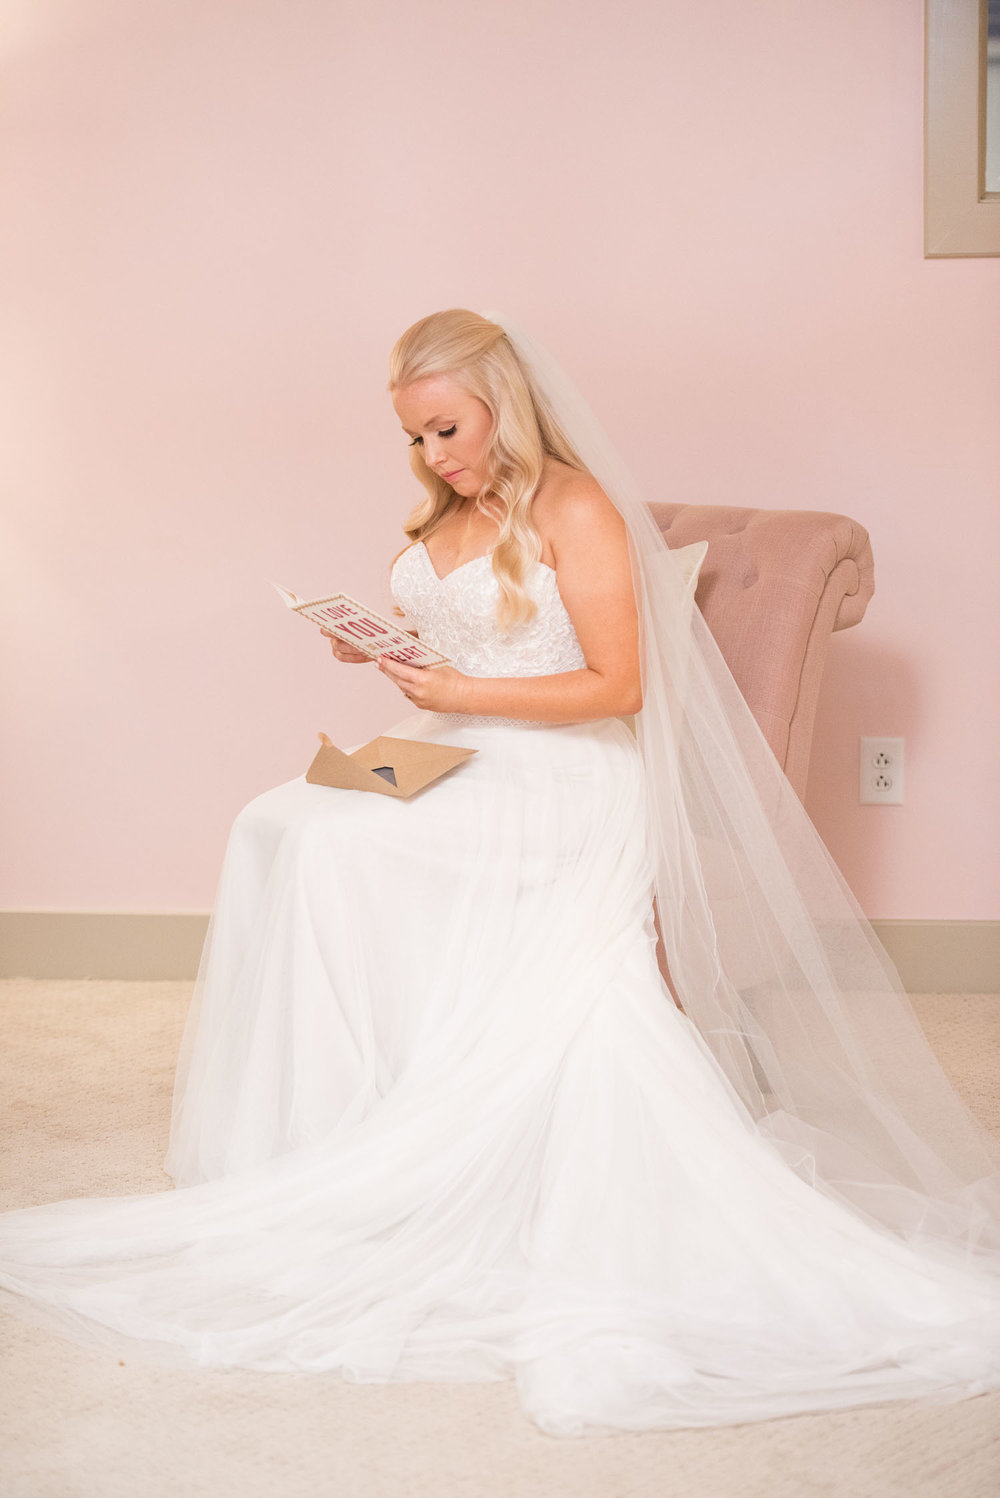 38 bride reads letter from her future husband.jpg